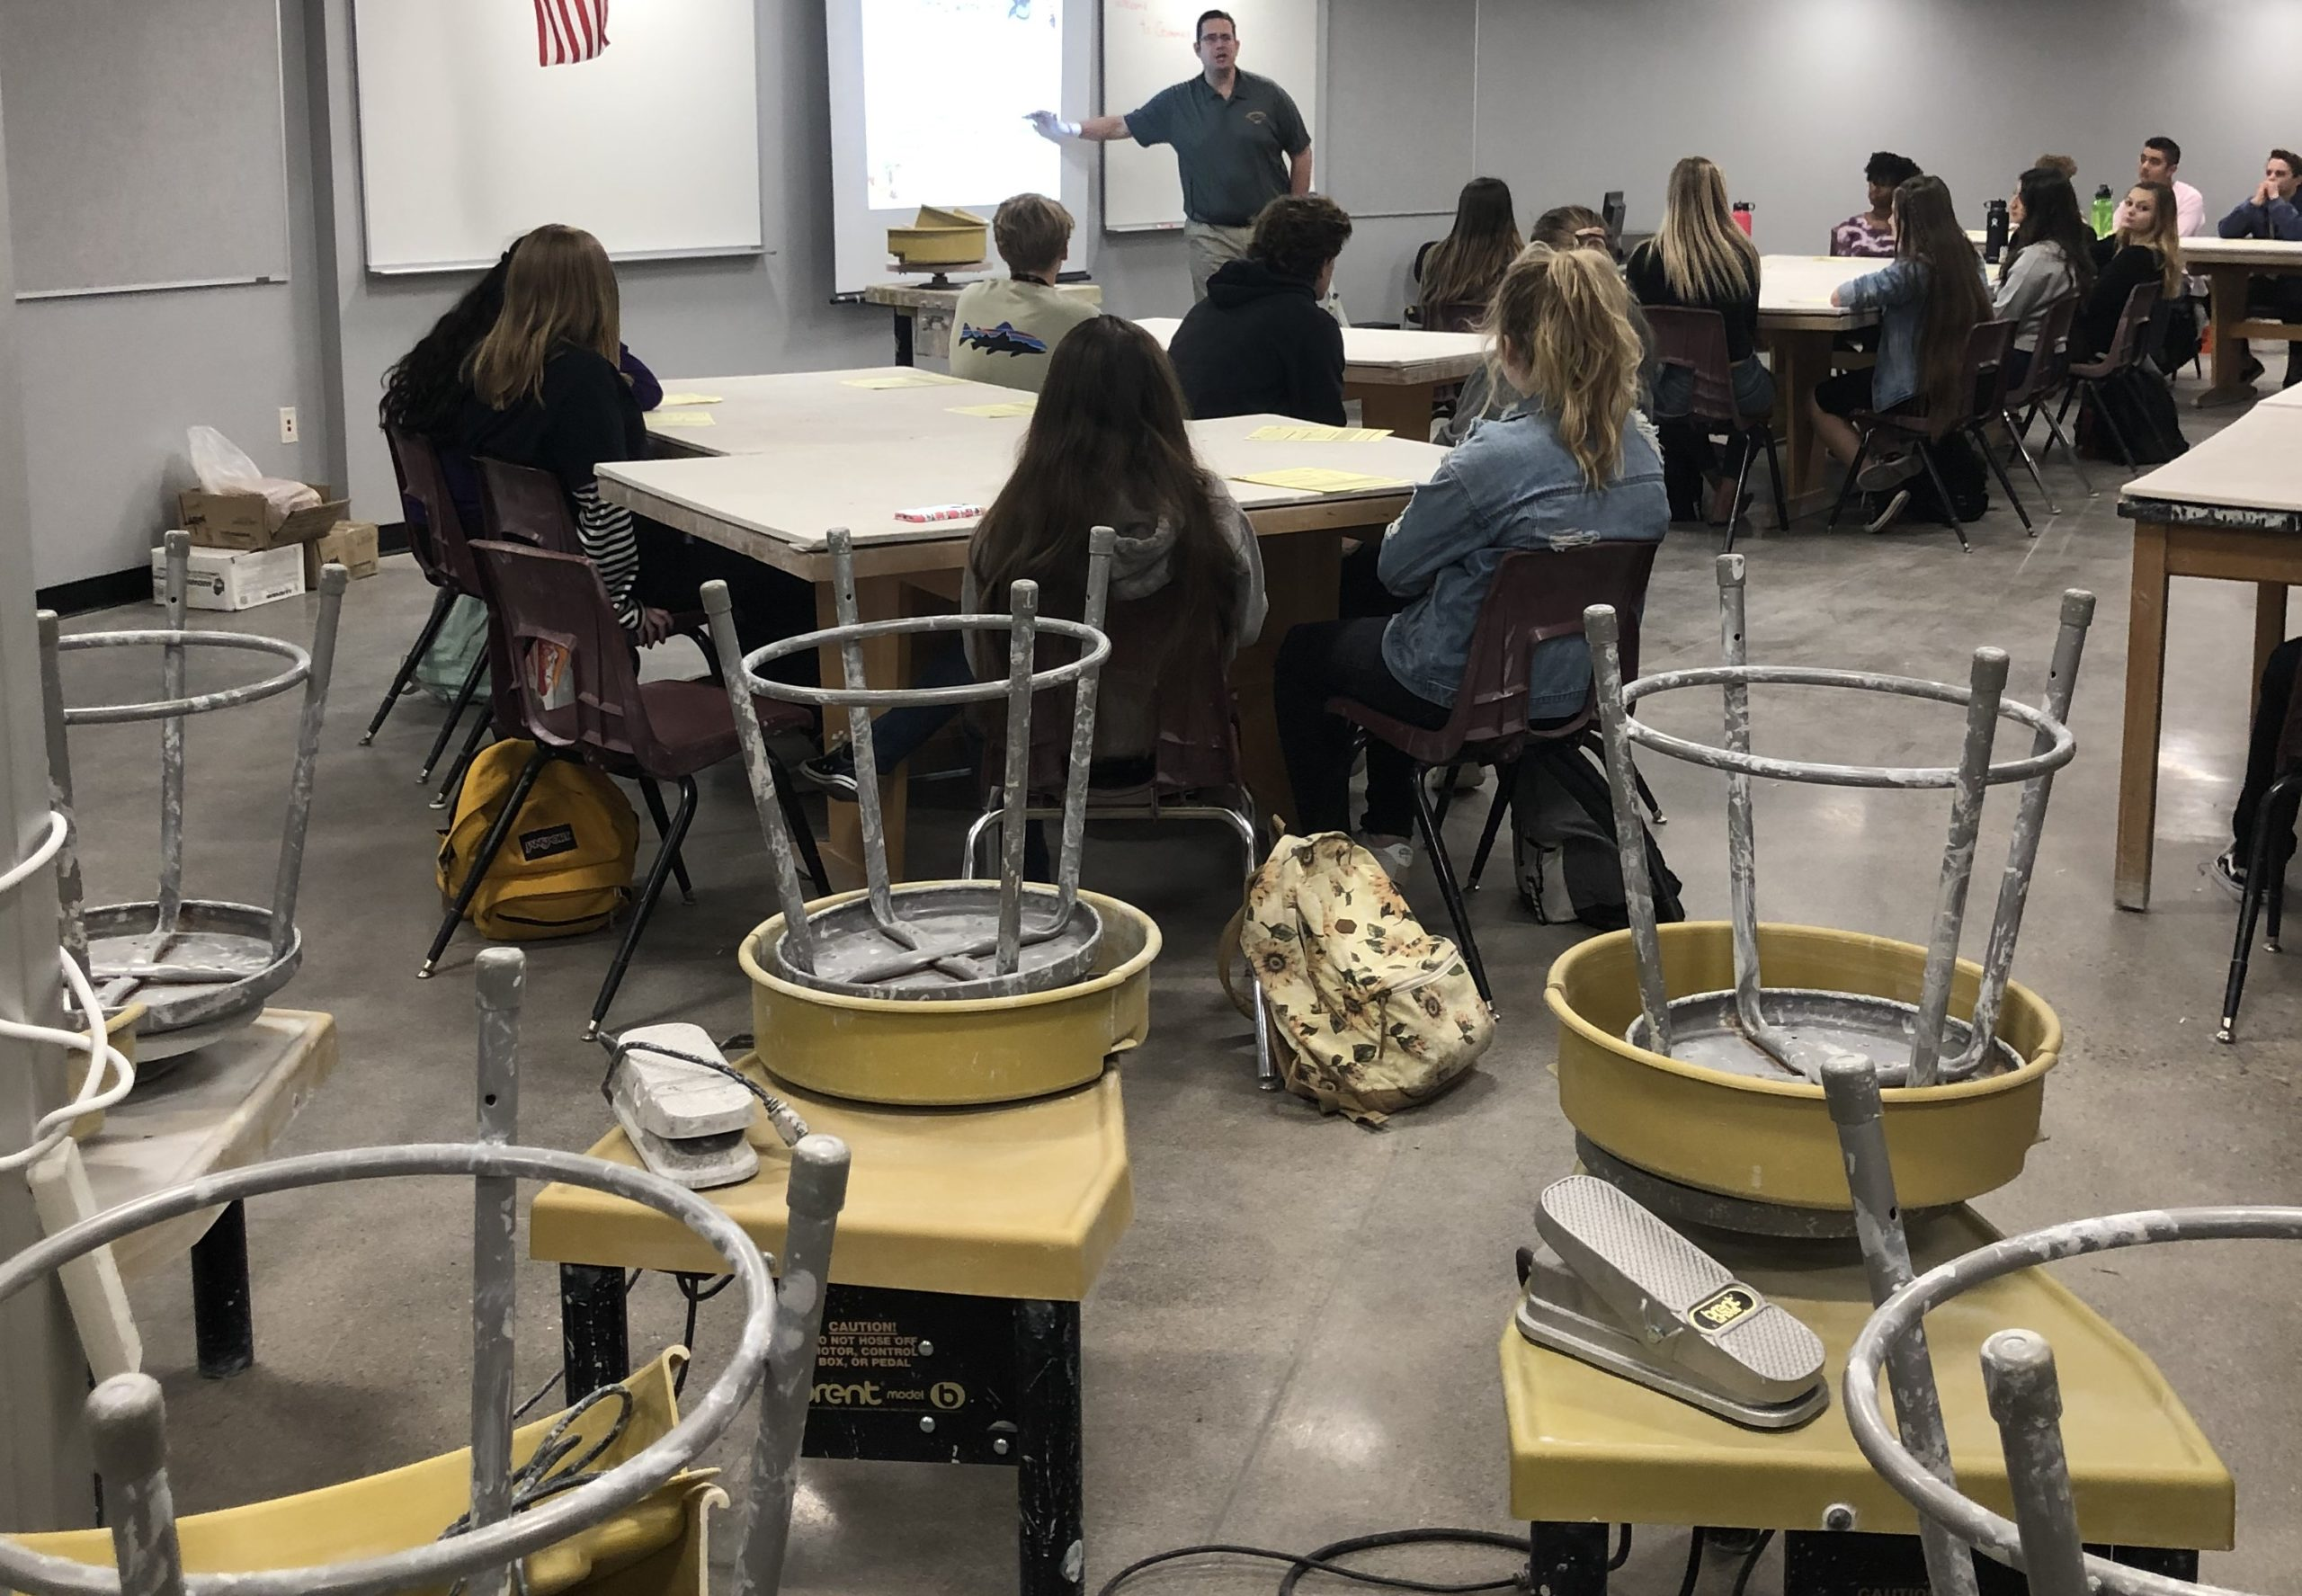 Ceramics Teacher Frank Eager With Students Inside A Classroom At The Newly Opened Sunrise Mountain Art Center (SMart Center) For Students On The Campus Of Sunrise Mountain High School. Photo Courtesy Of Peoria Unified School District